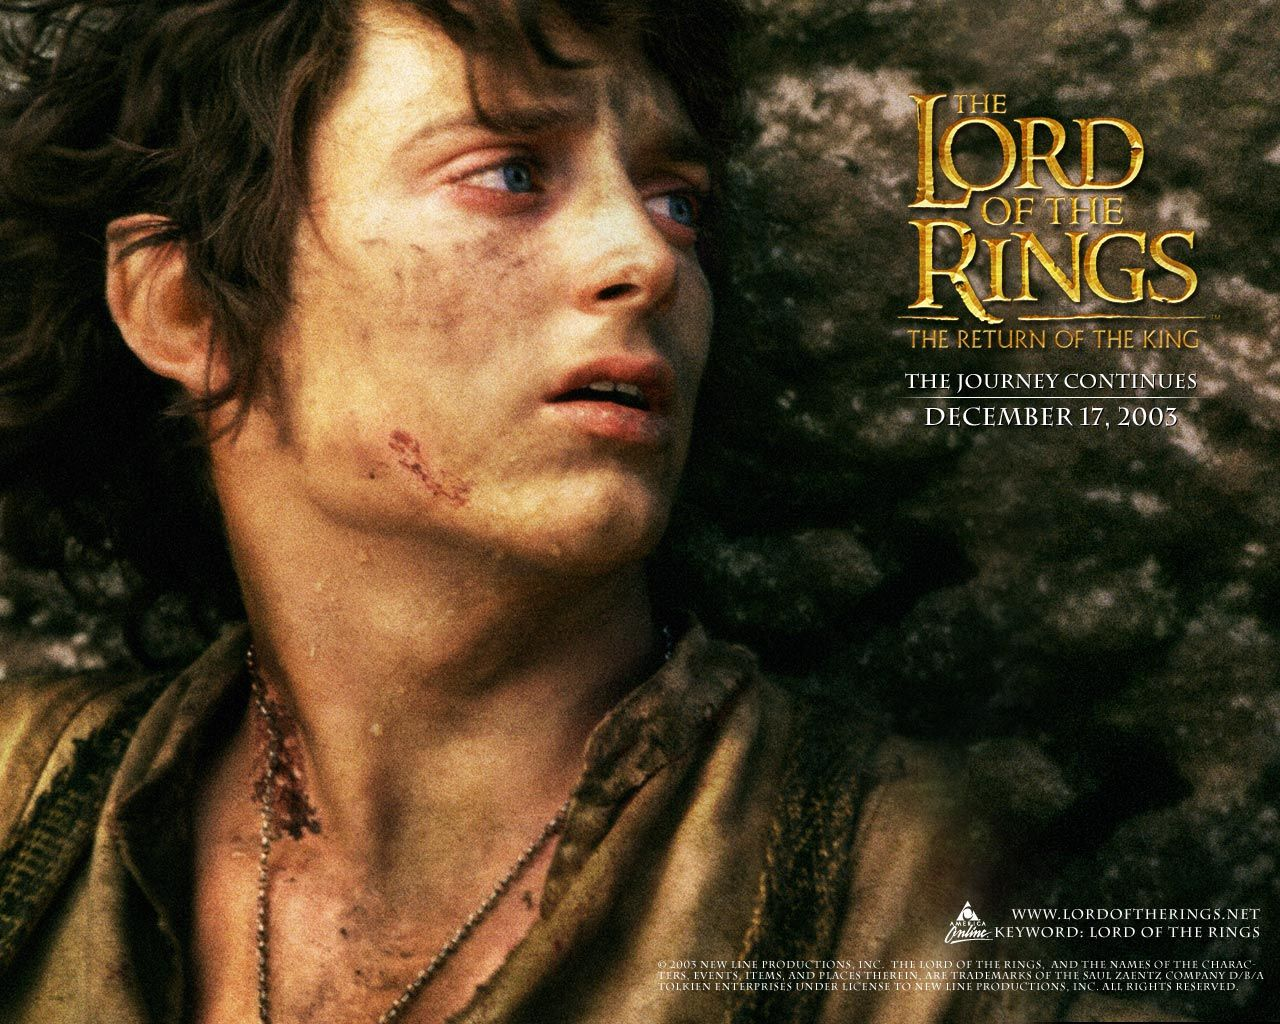 a dominic photos monaghan ring and pippin boyd frodo sam s from entertainment as rings photo in fellowship lord astin jt the sean wood line merry scene left billy elijah ap of are new cinema shown